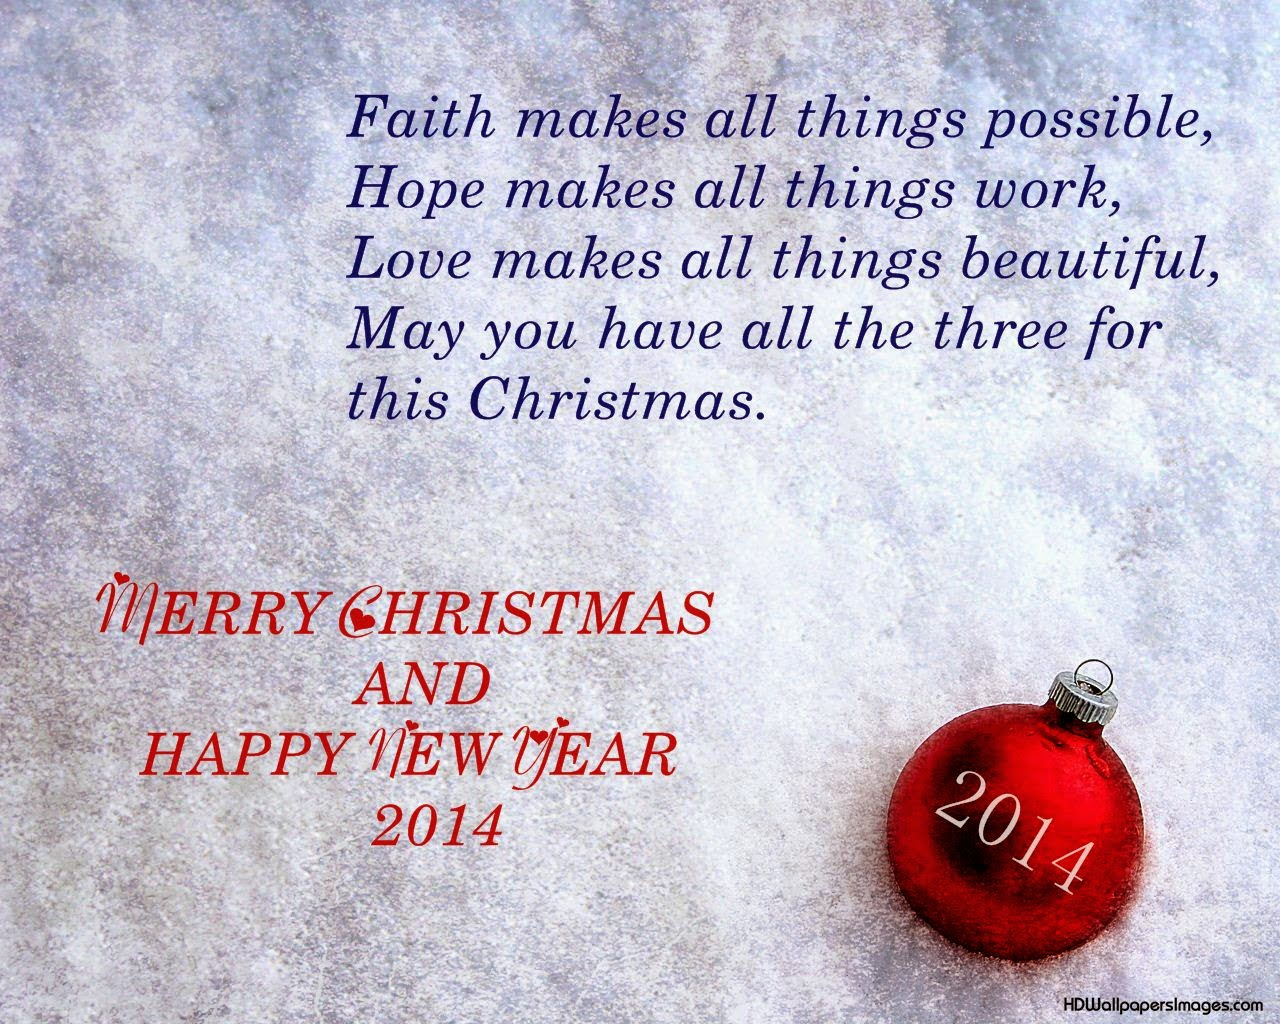 Christmas List Quotes Quotesgram: Merry Christmas Quotes. QuotesGram